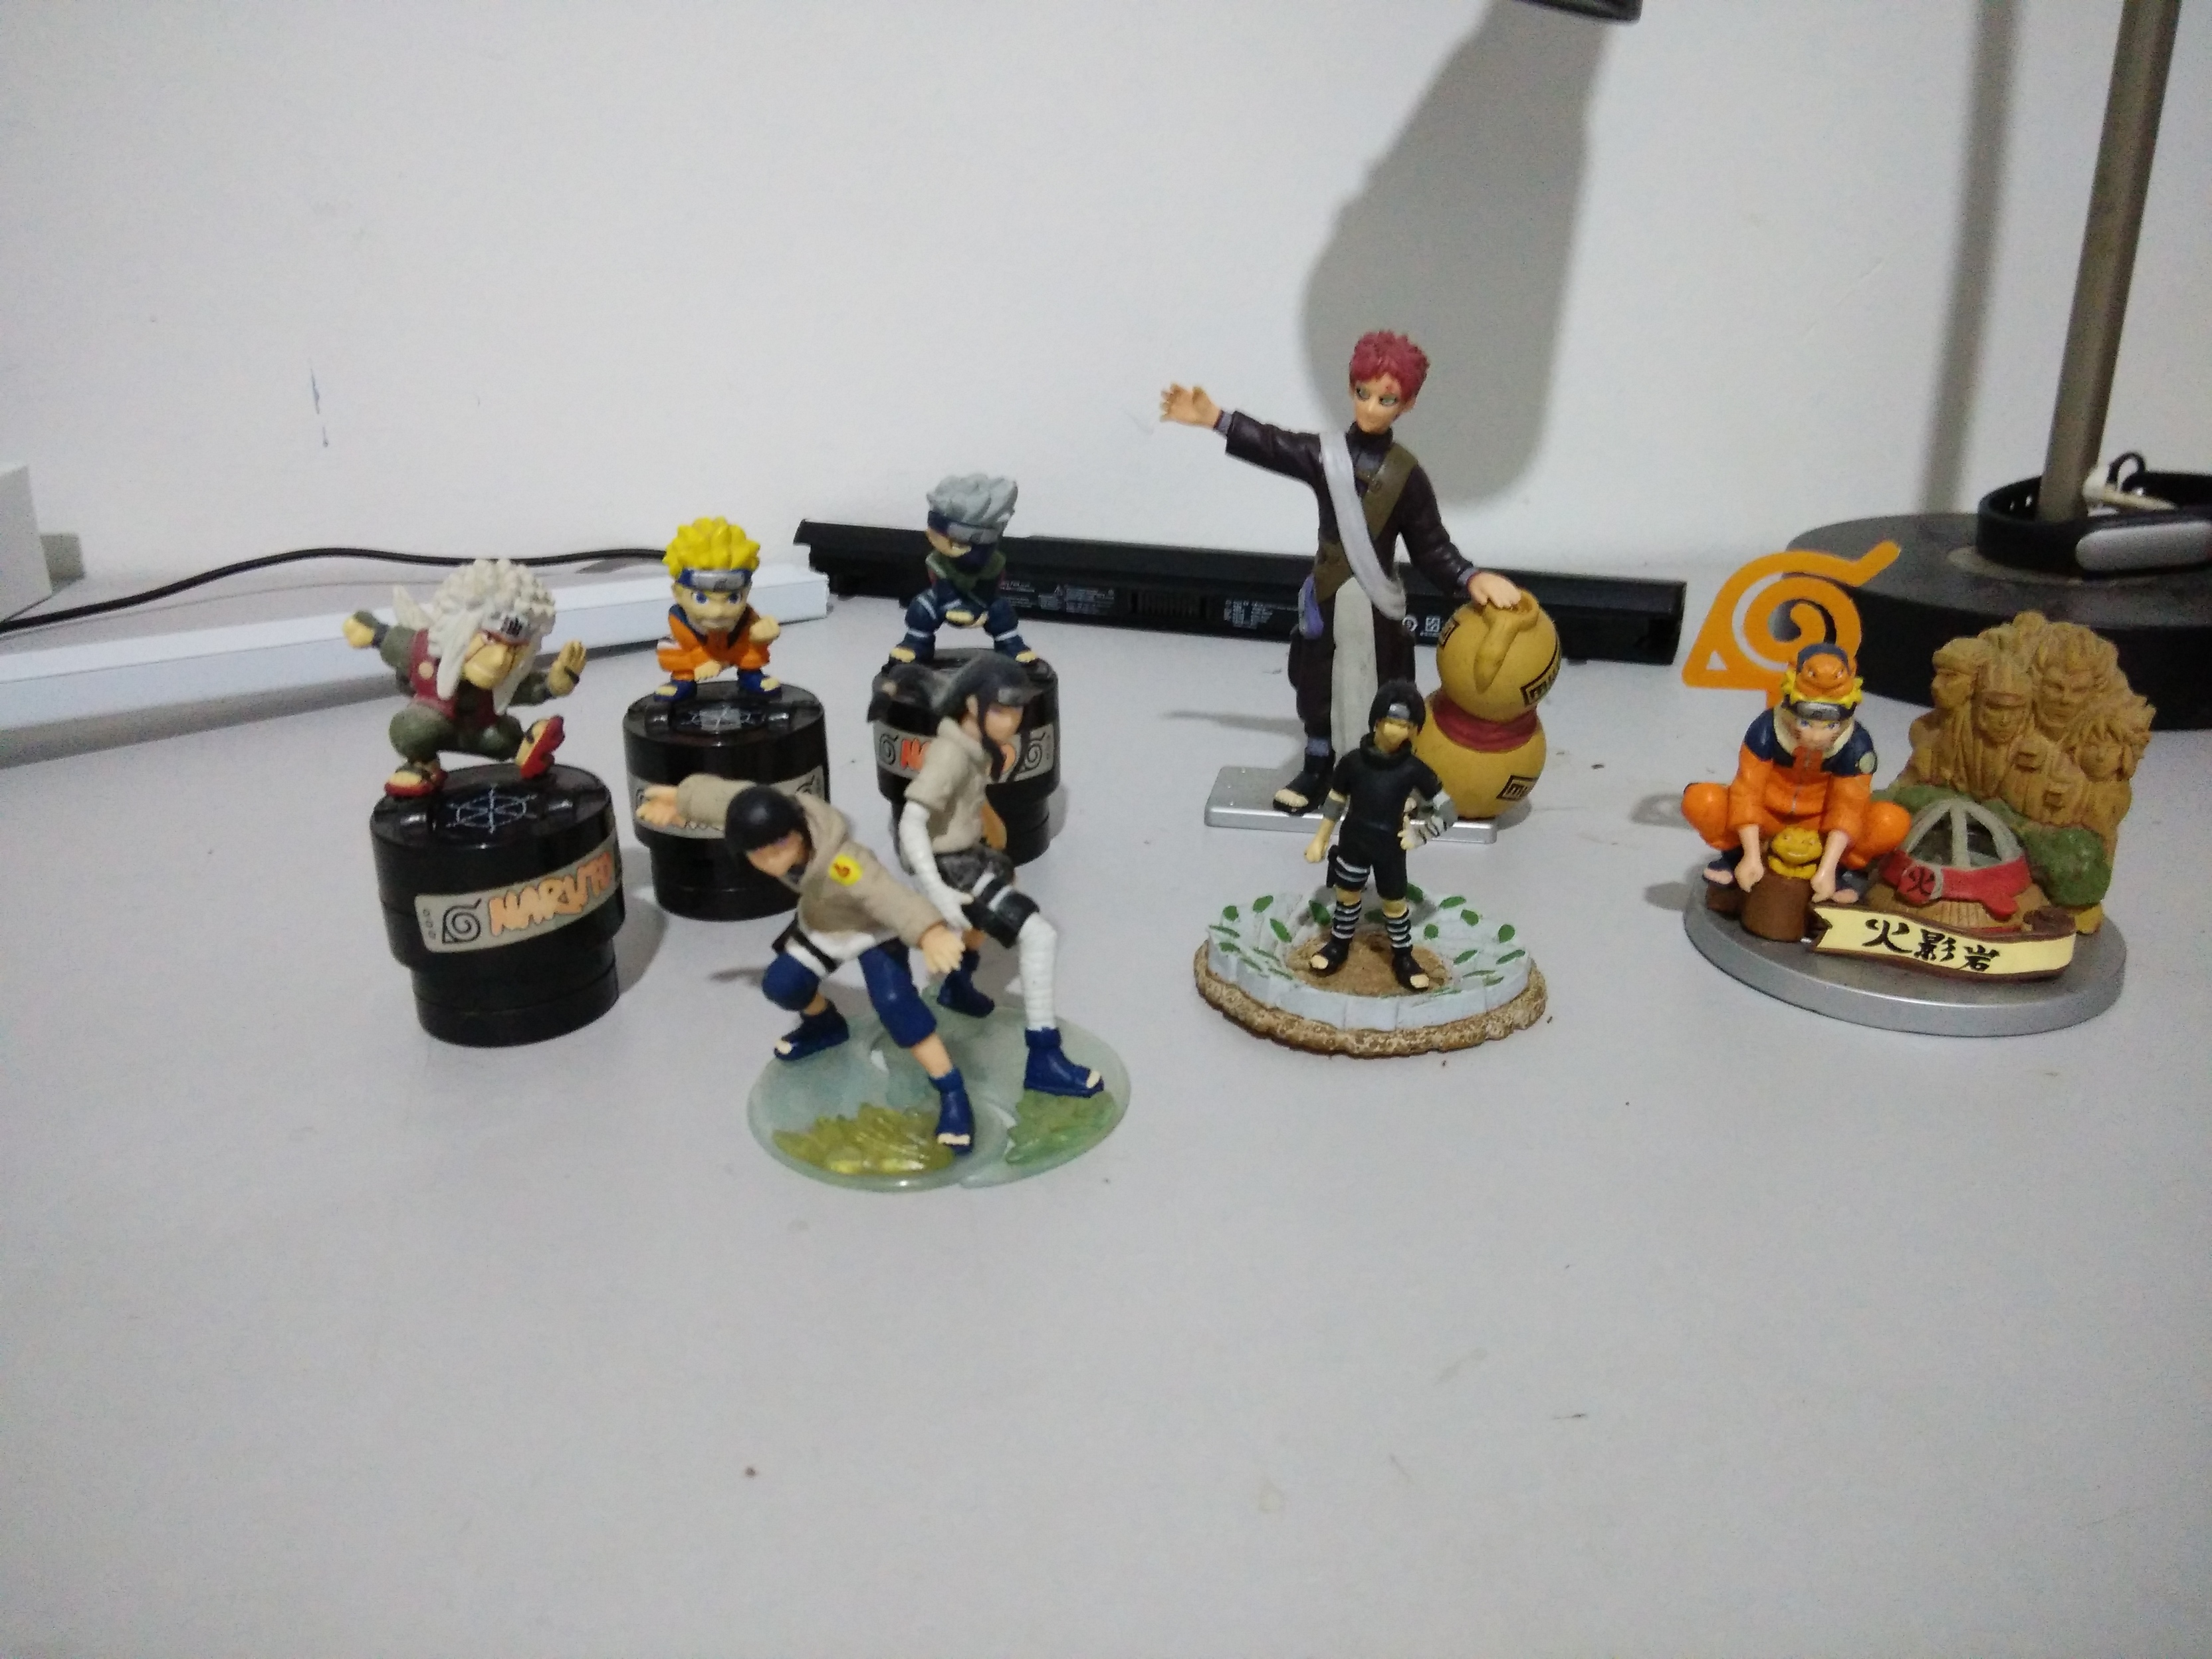 Naruto toys garage sale Others Miri munity